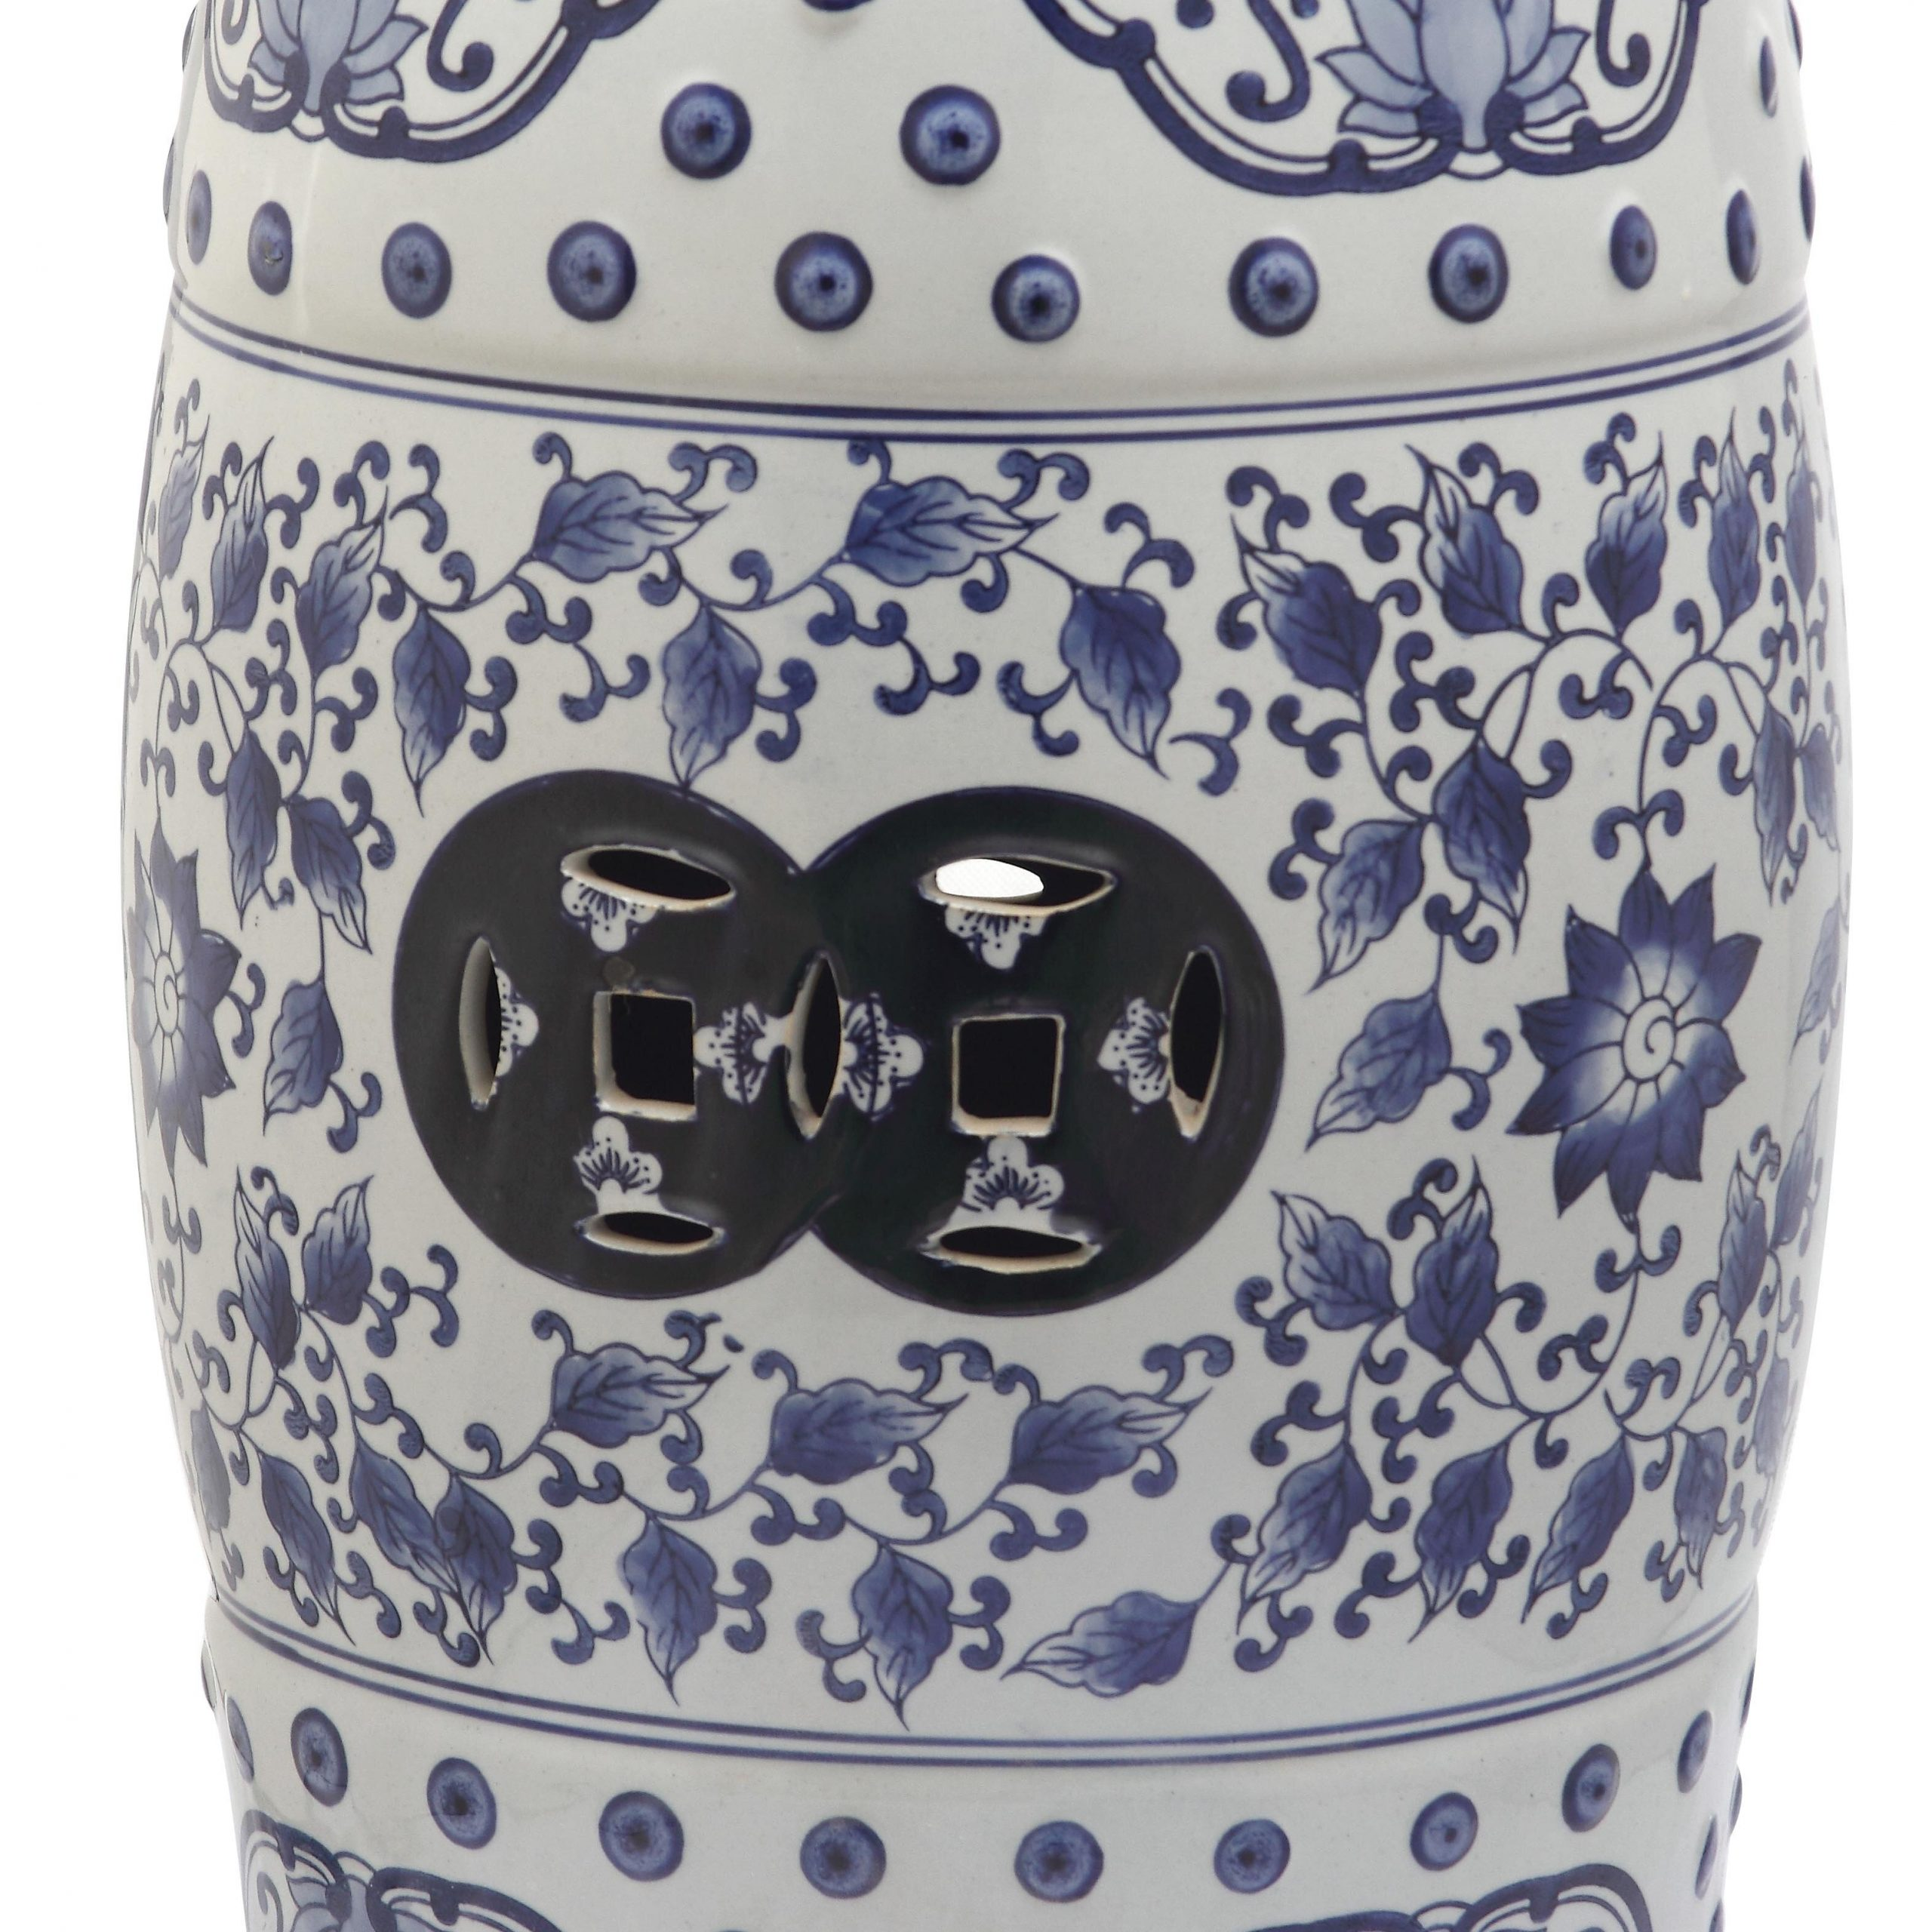 Blue Garden Accent Stools You'Ll Love In 2020 | Wayfair With Regard To Williar Cherry Blossom Ceramic Garden Stools (View 7 of 25)